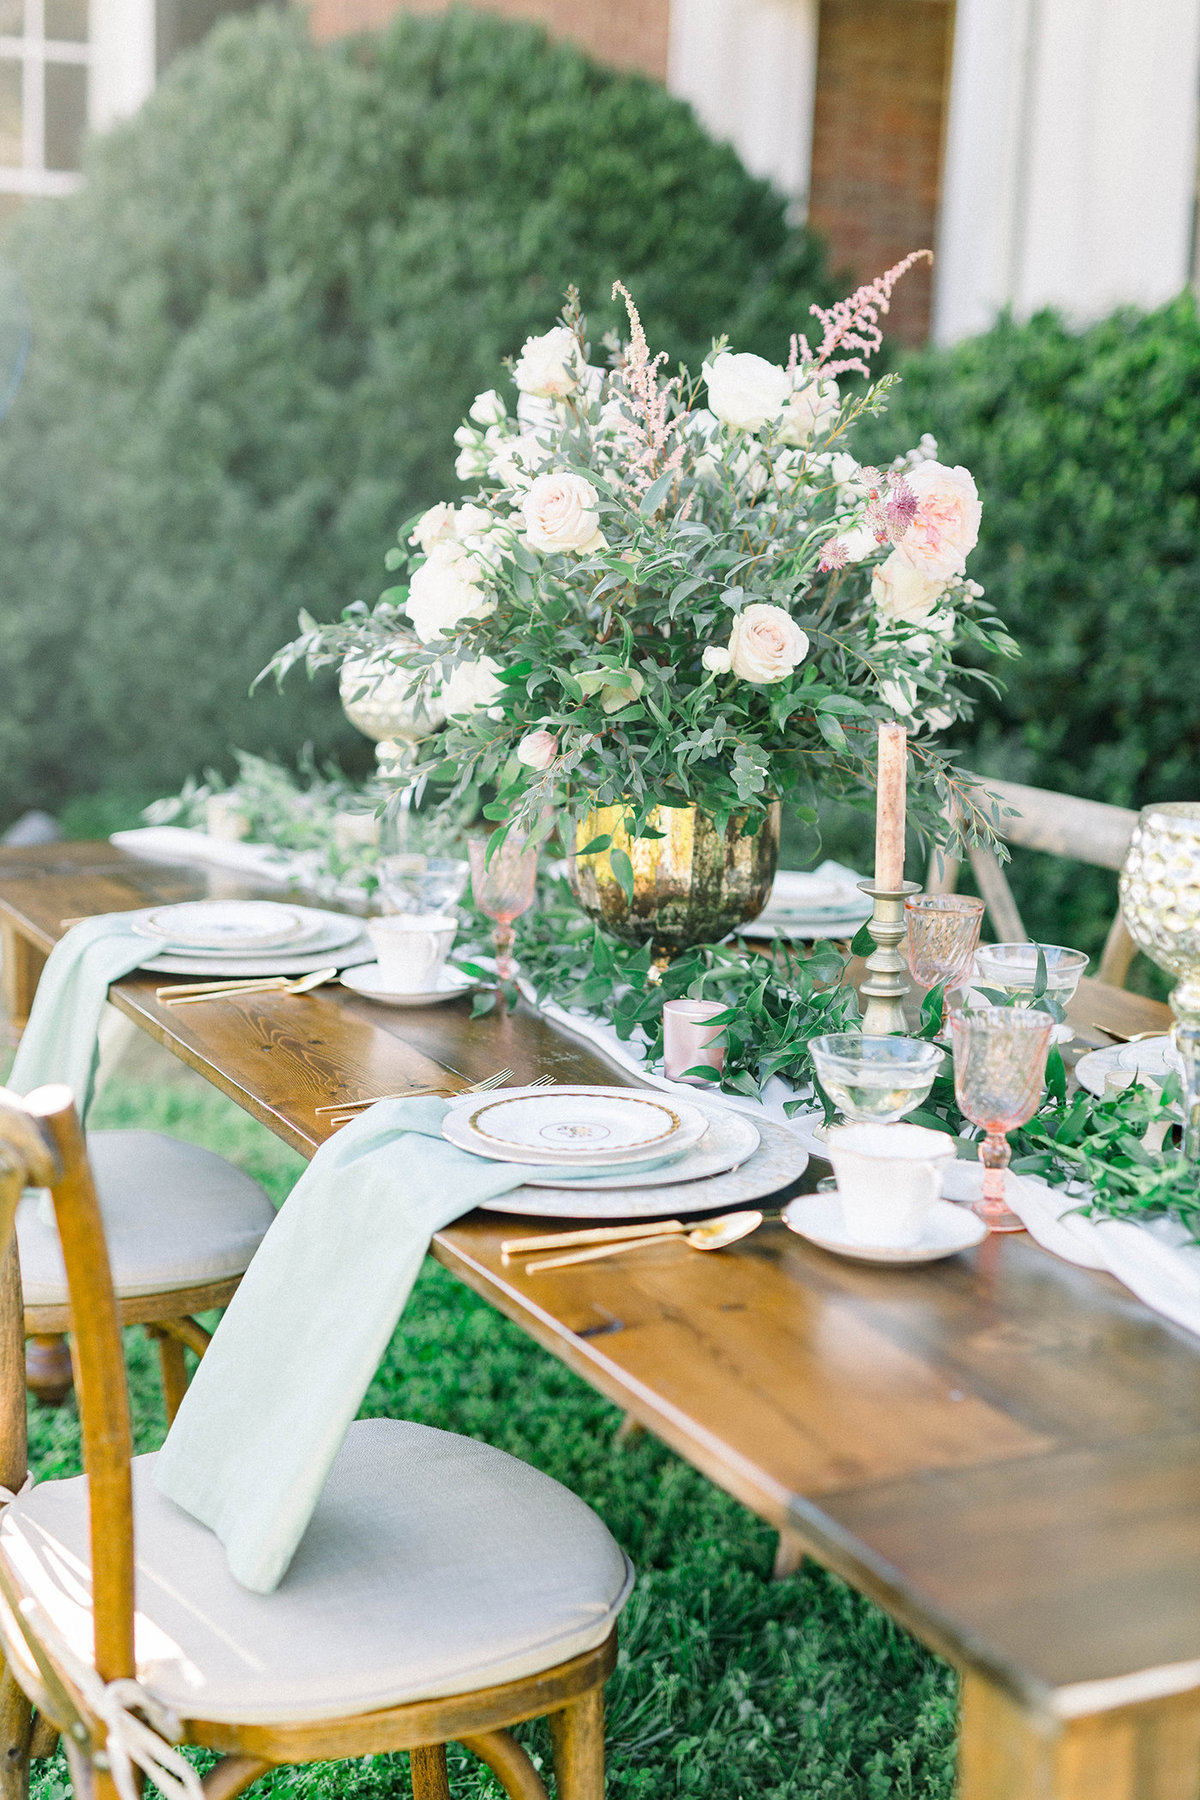 Cedarmont Nashville Editorial - Sarah Sunstrom Photography - Fine Art Wedding Photographer - 28